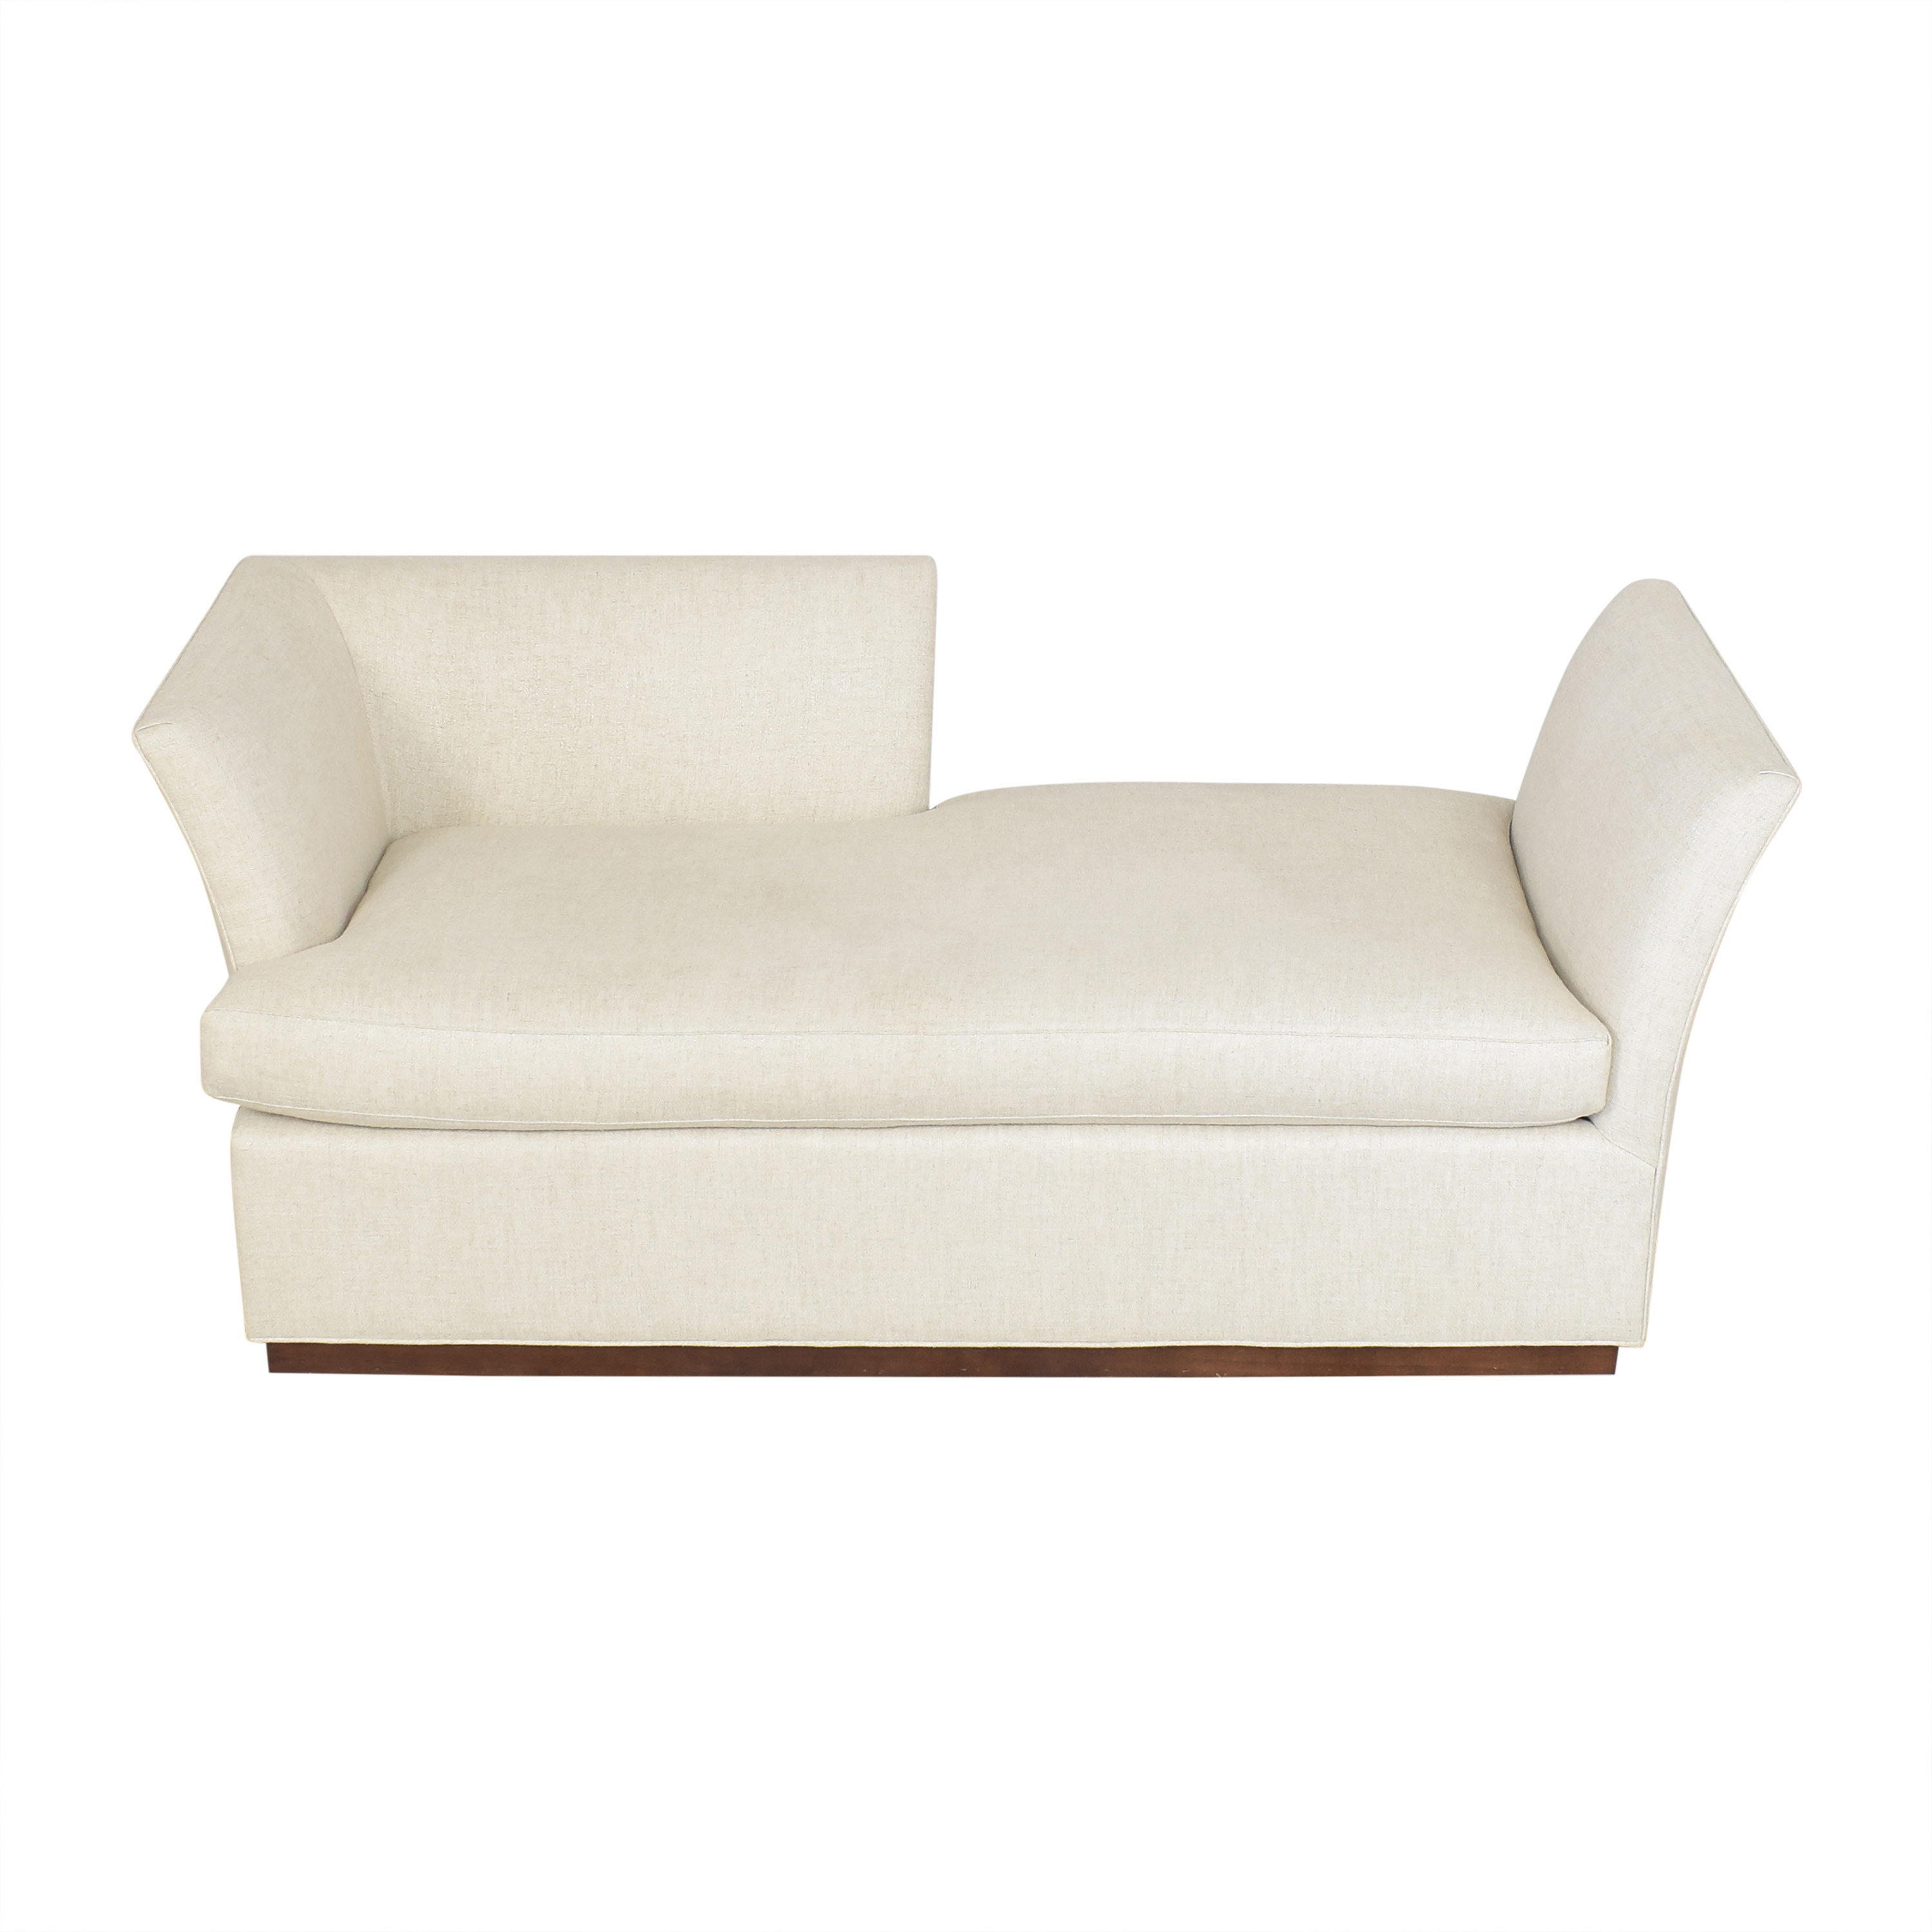 Vanguard Furniture Vanguard Furniture Millington Chaise by Micheal Weiss for sale